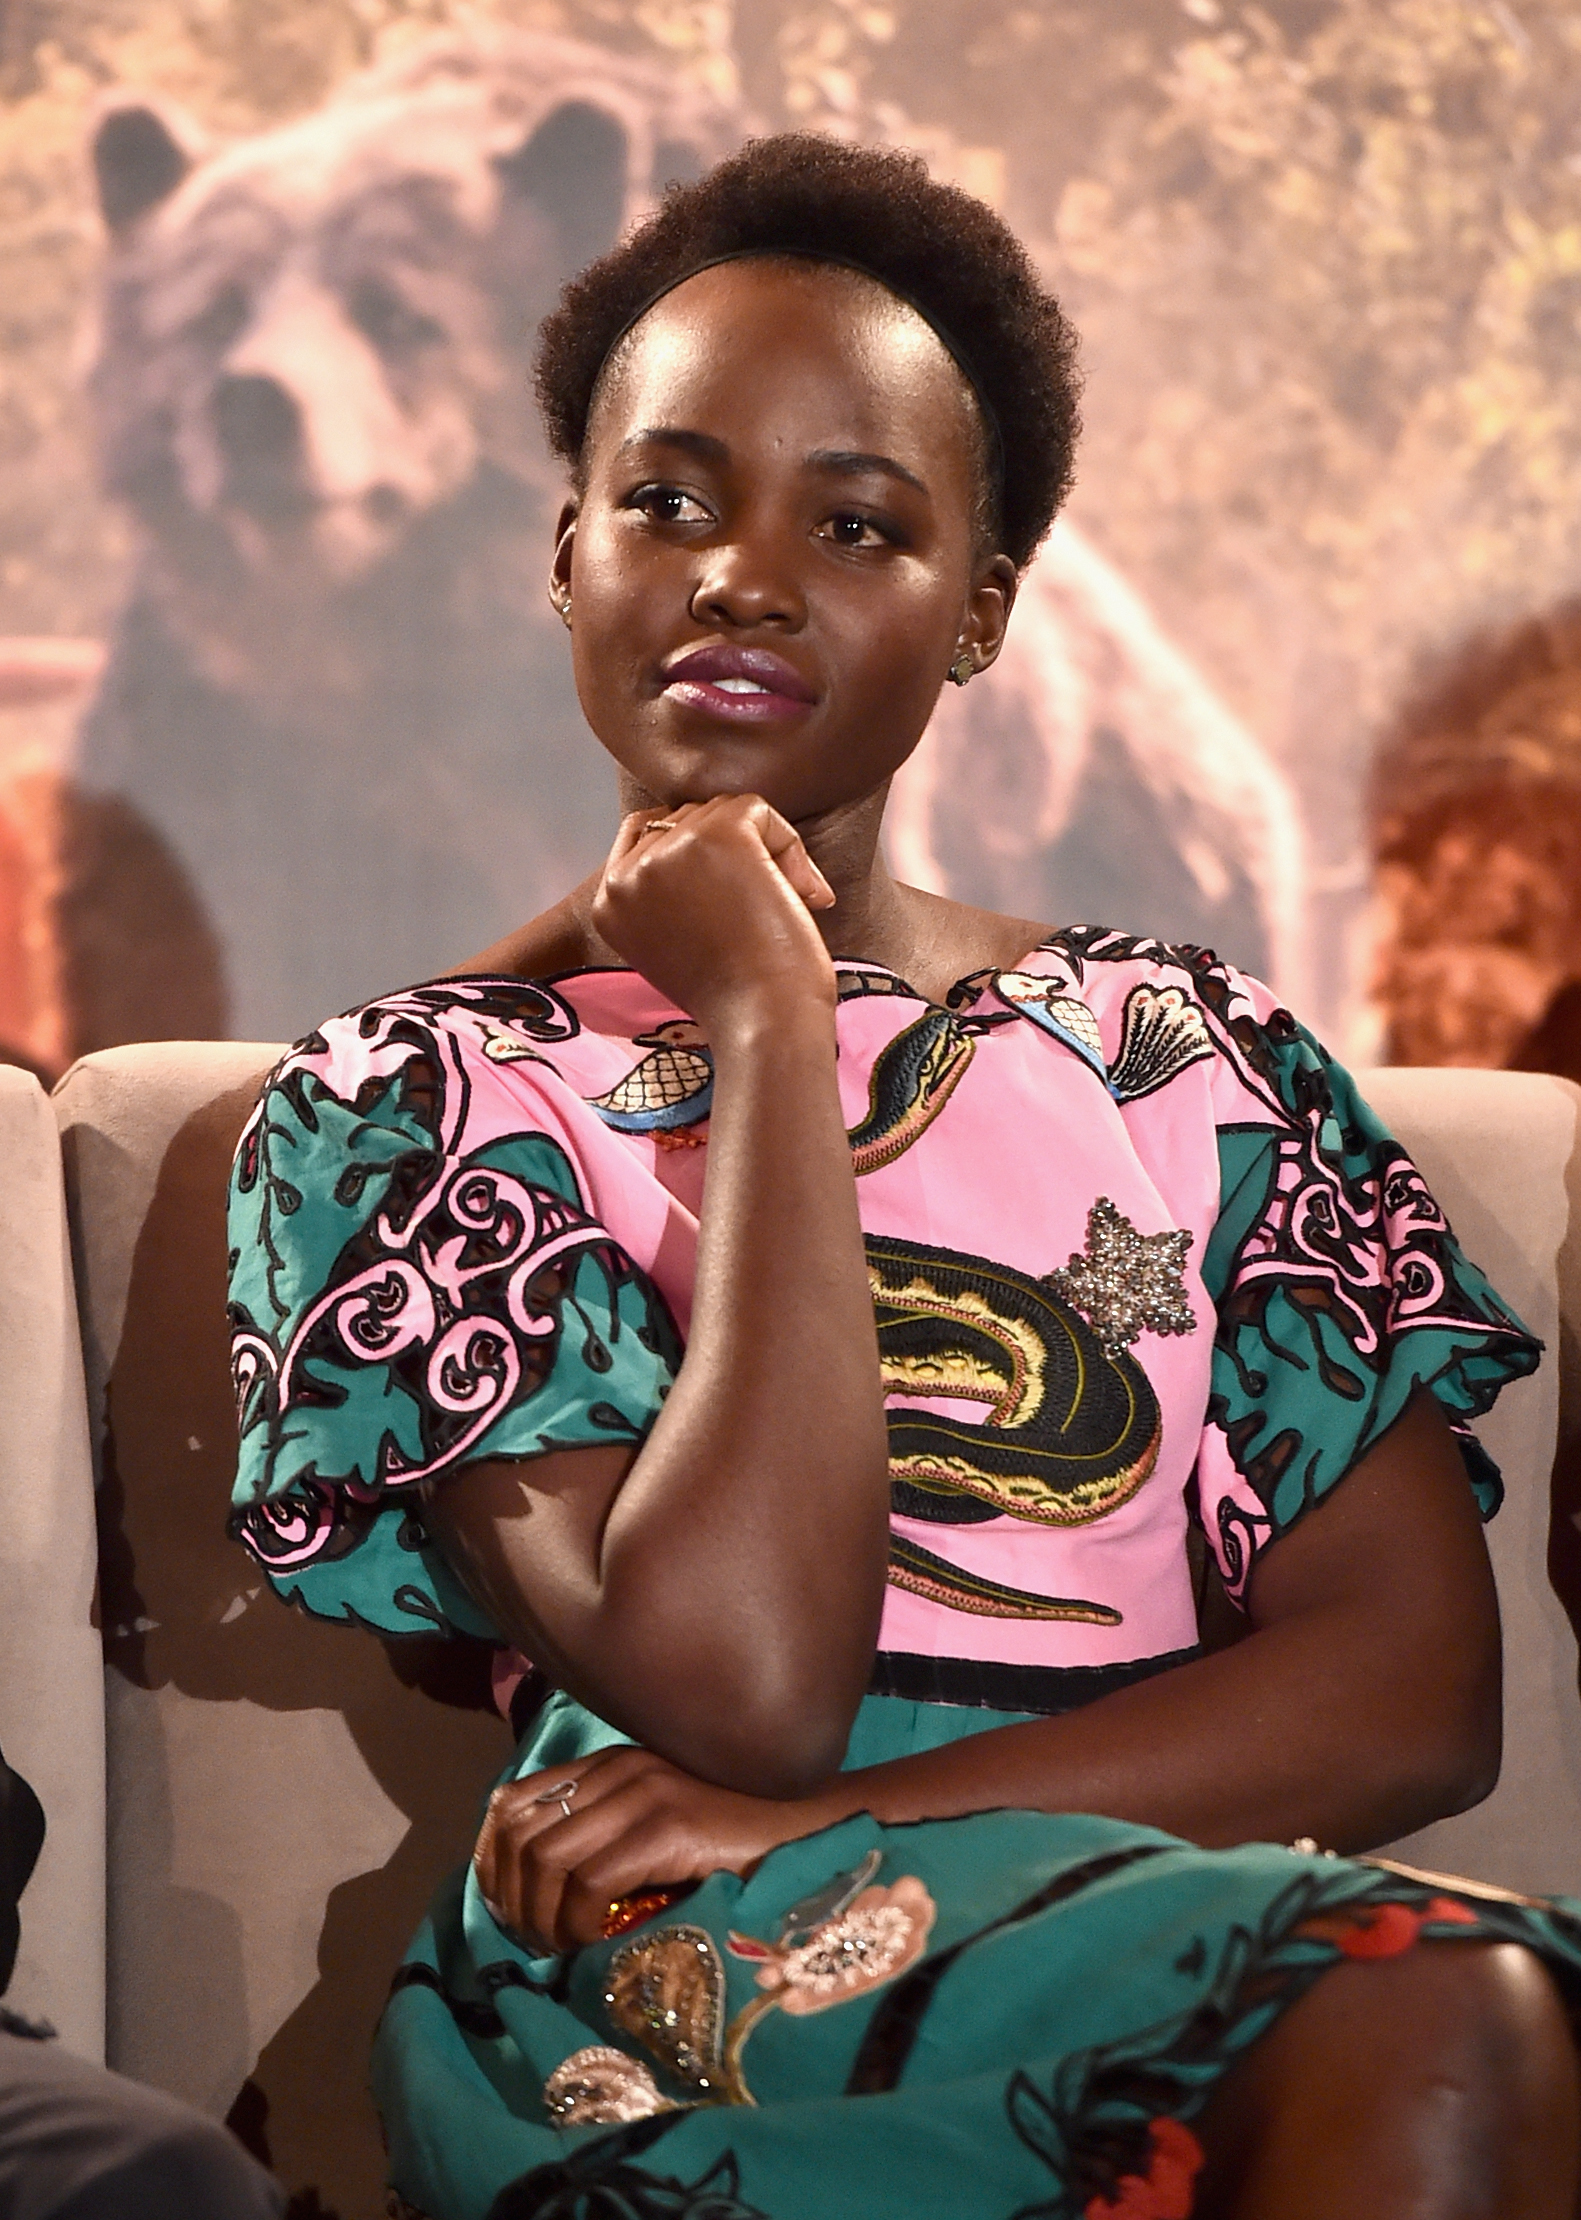 Lupita Nyong'o lends her voice talents to Raksha, the wolf mother.